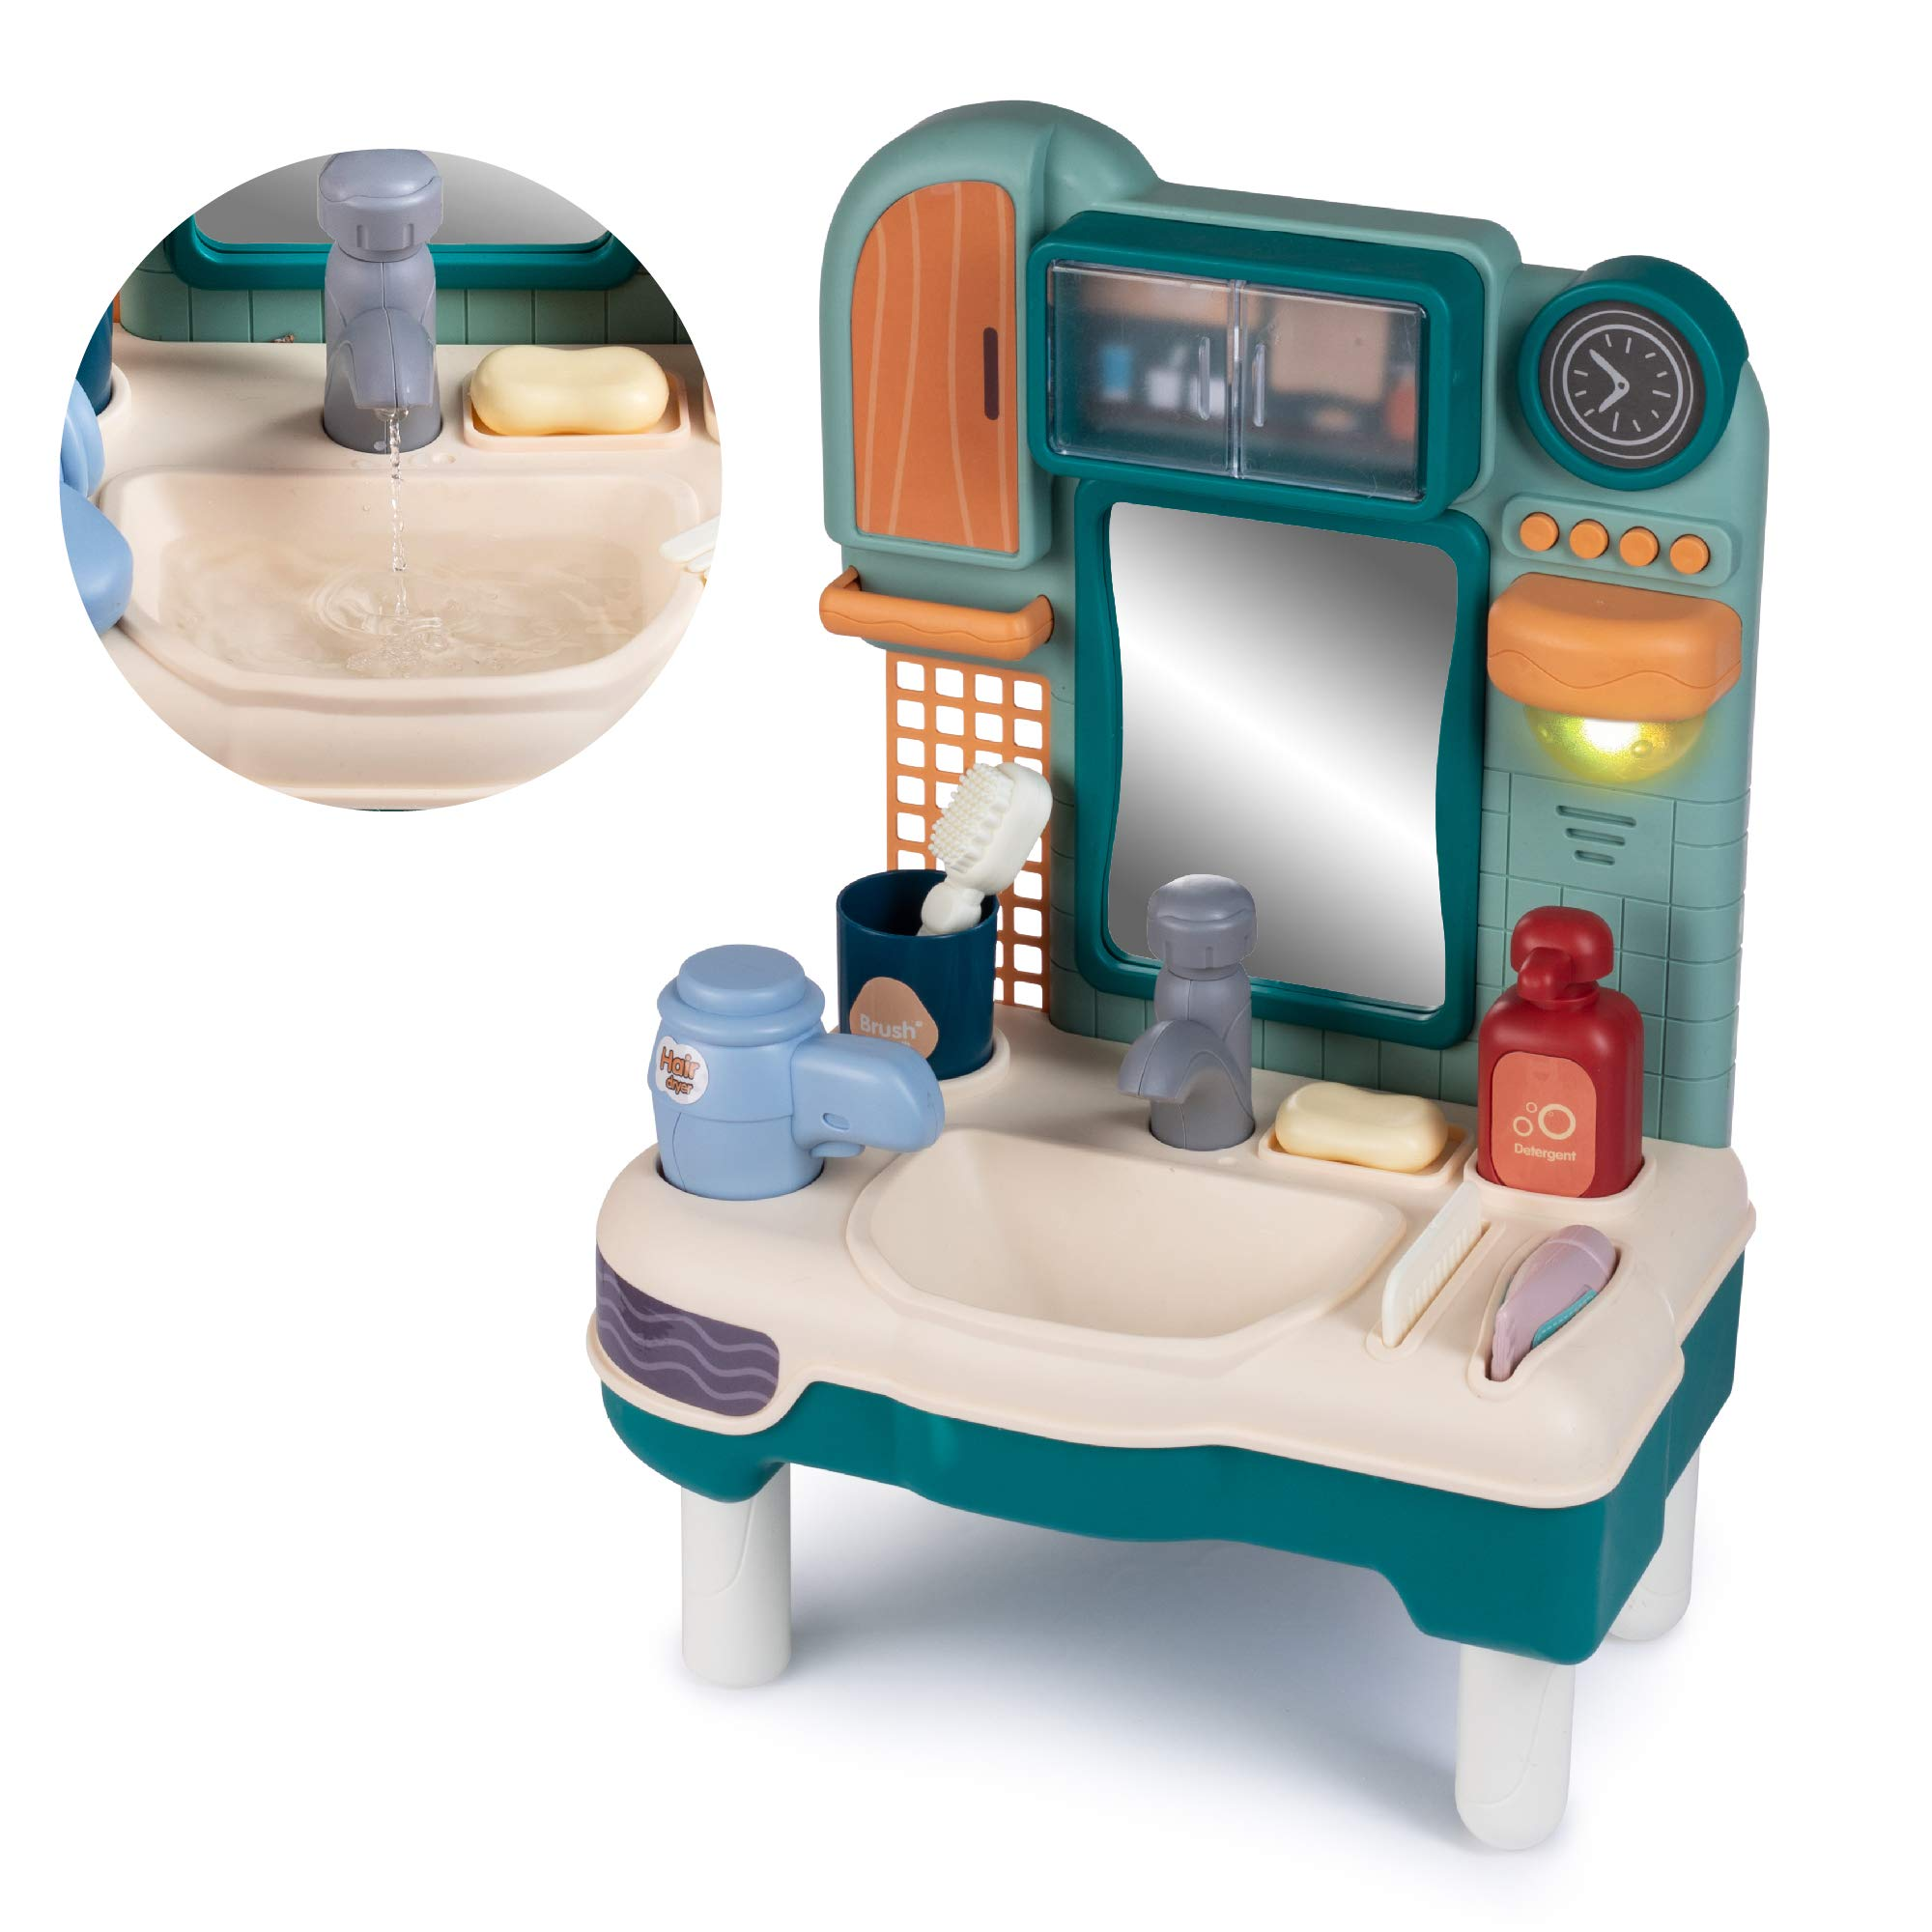 hoovy play washbasin bathroom sink kids play sink with running water pretend play washbasin toys set with working faucet and play toothbrush